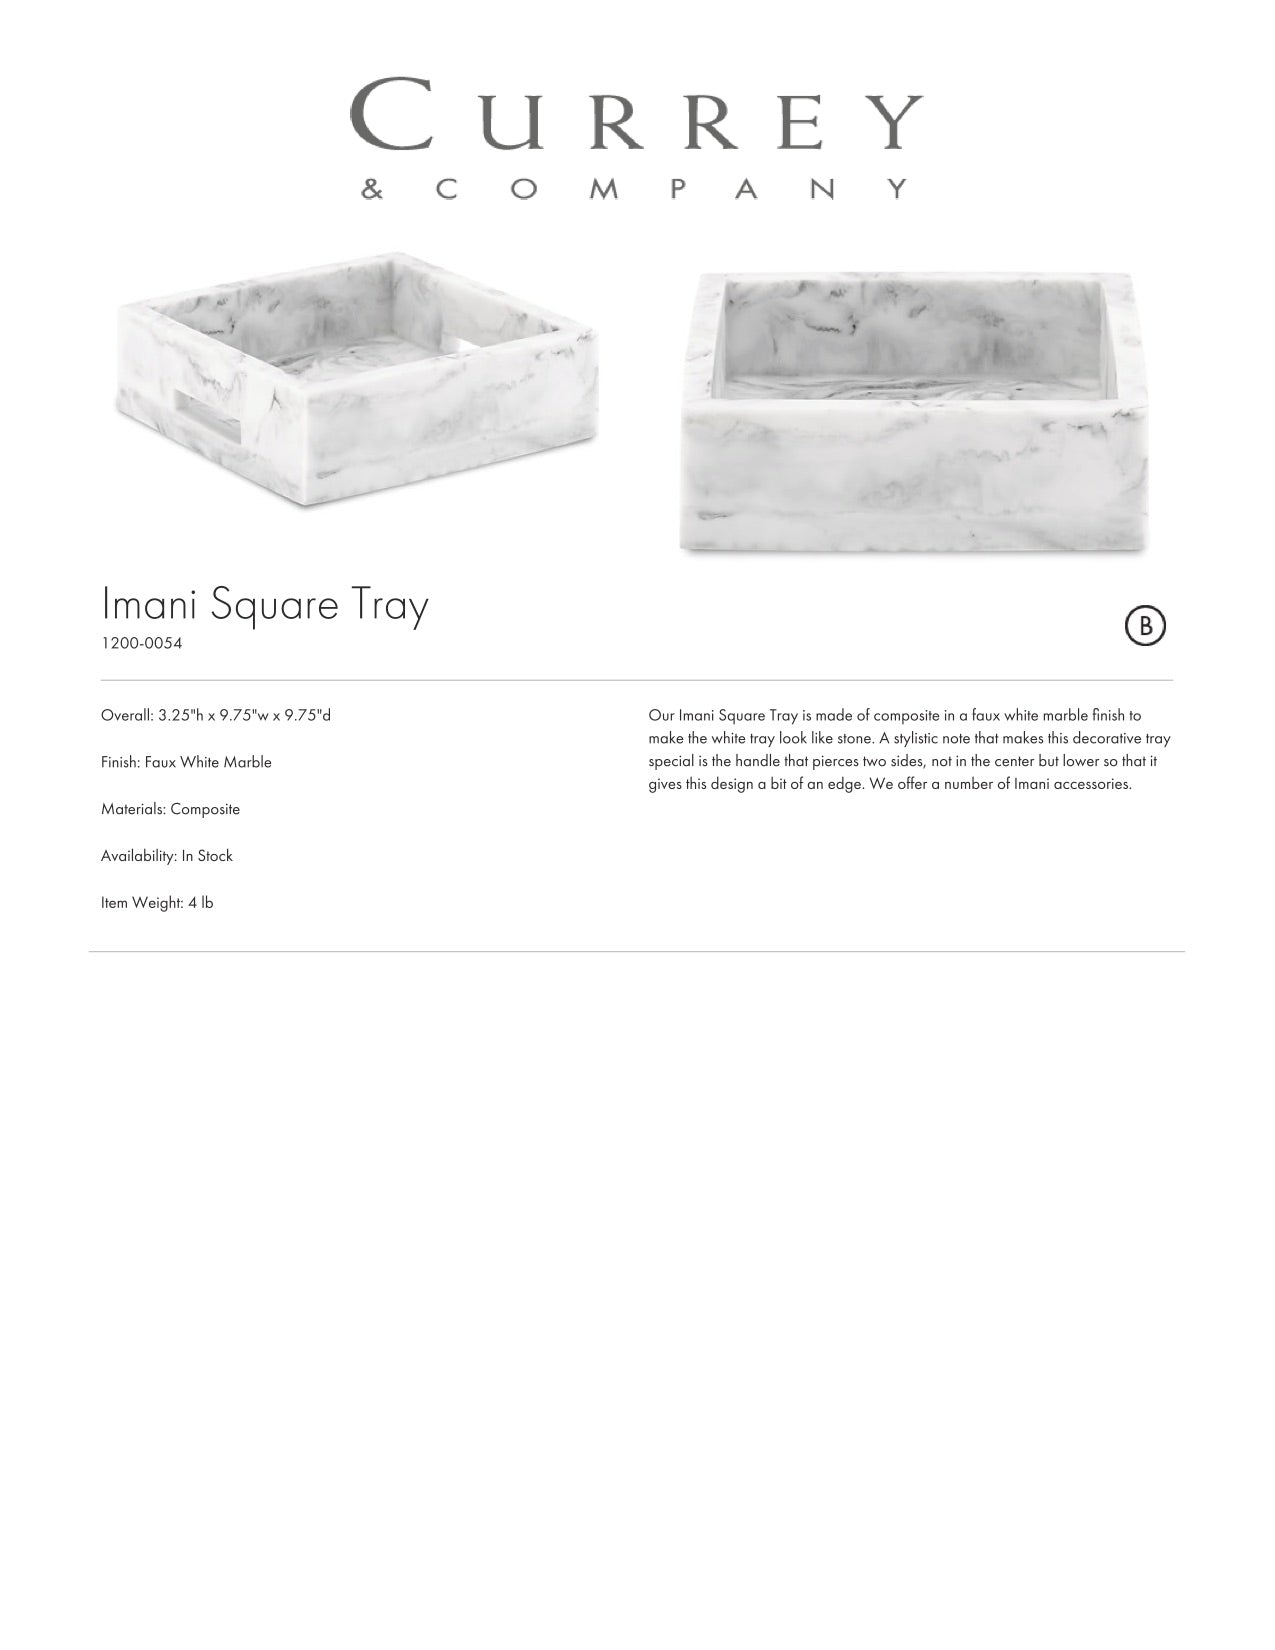 Currey & Company Imani Square Tray Tearsheet